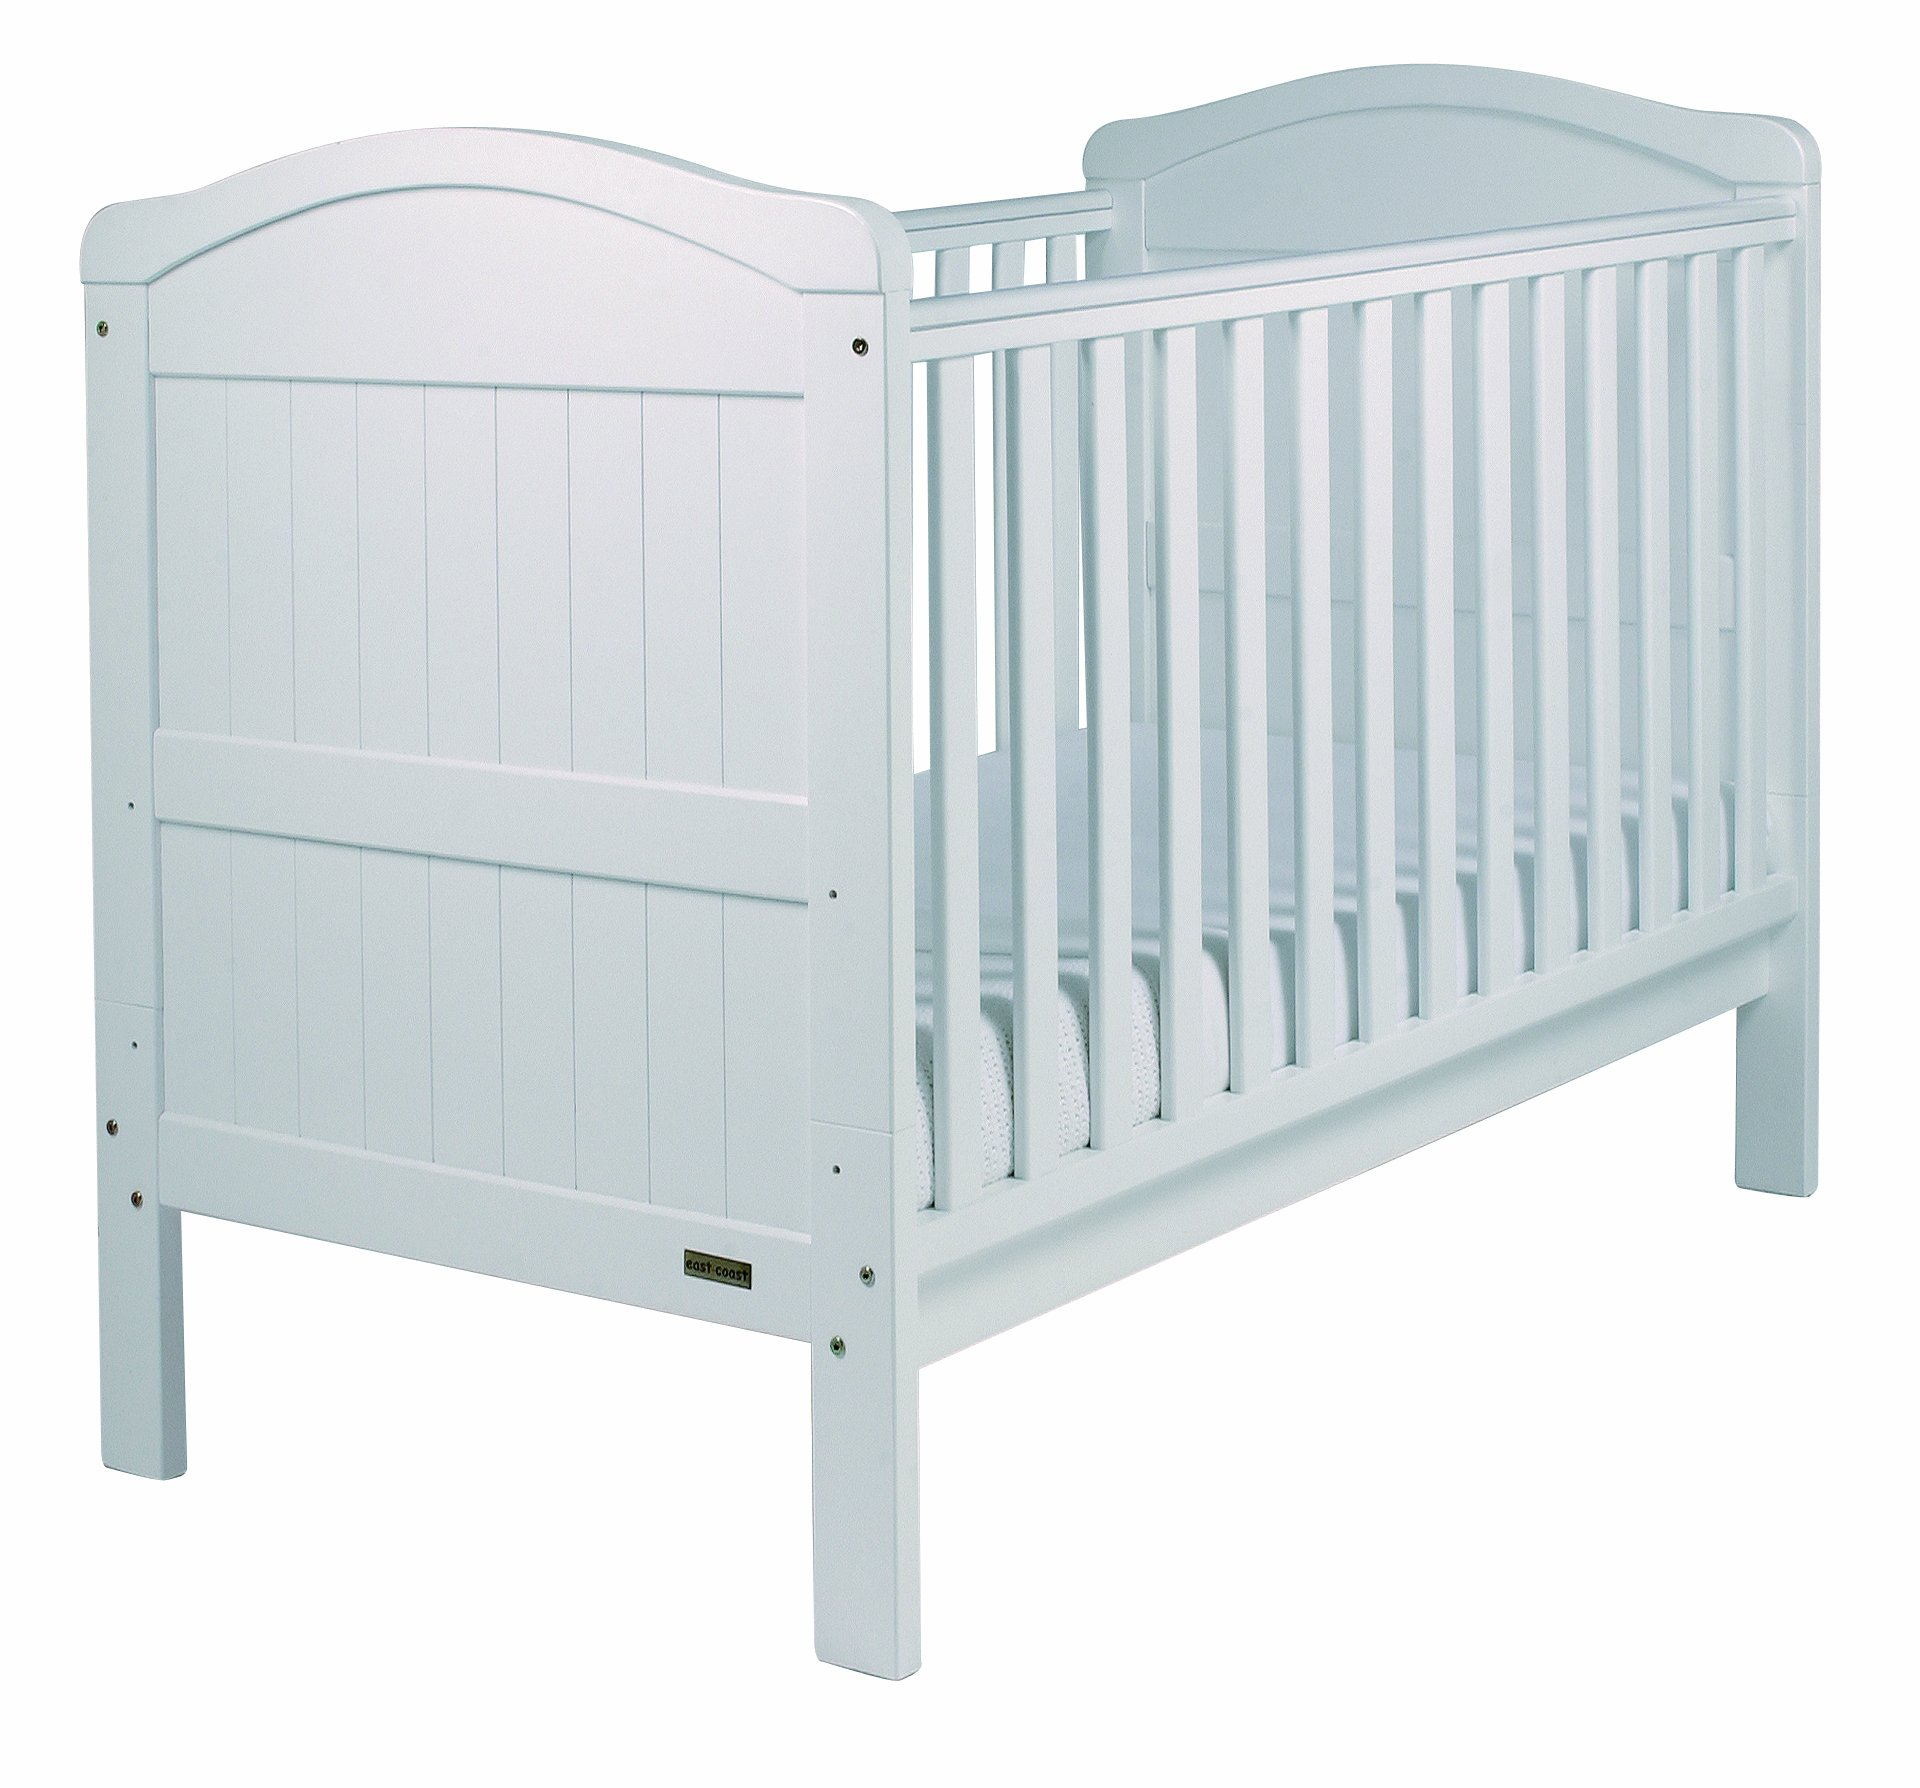 East Coast Country Cot Bed (White) East Coast Nursery Ltd 2 protective teething rails 3 base heights 2 fixed sides 1